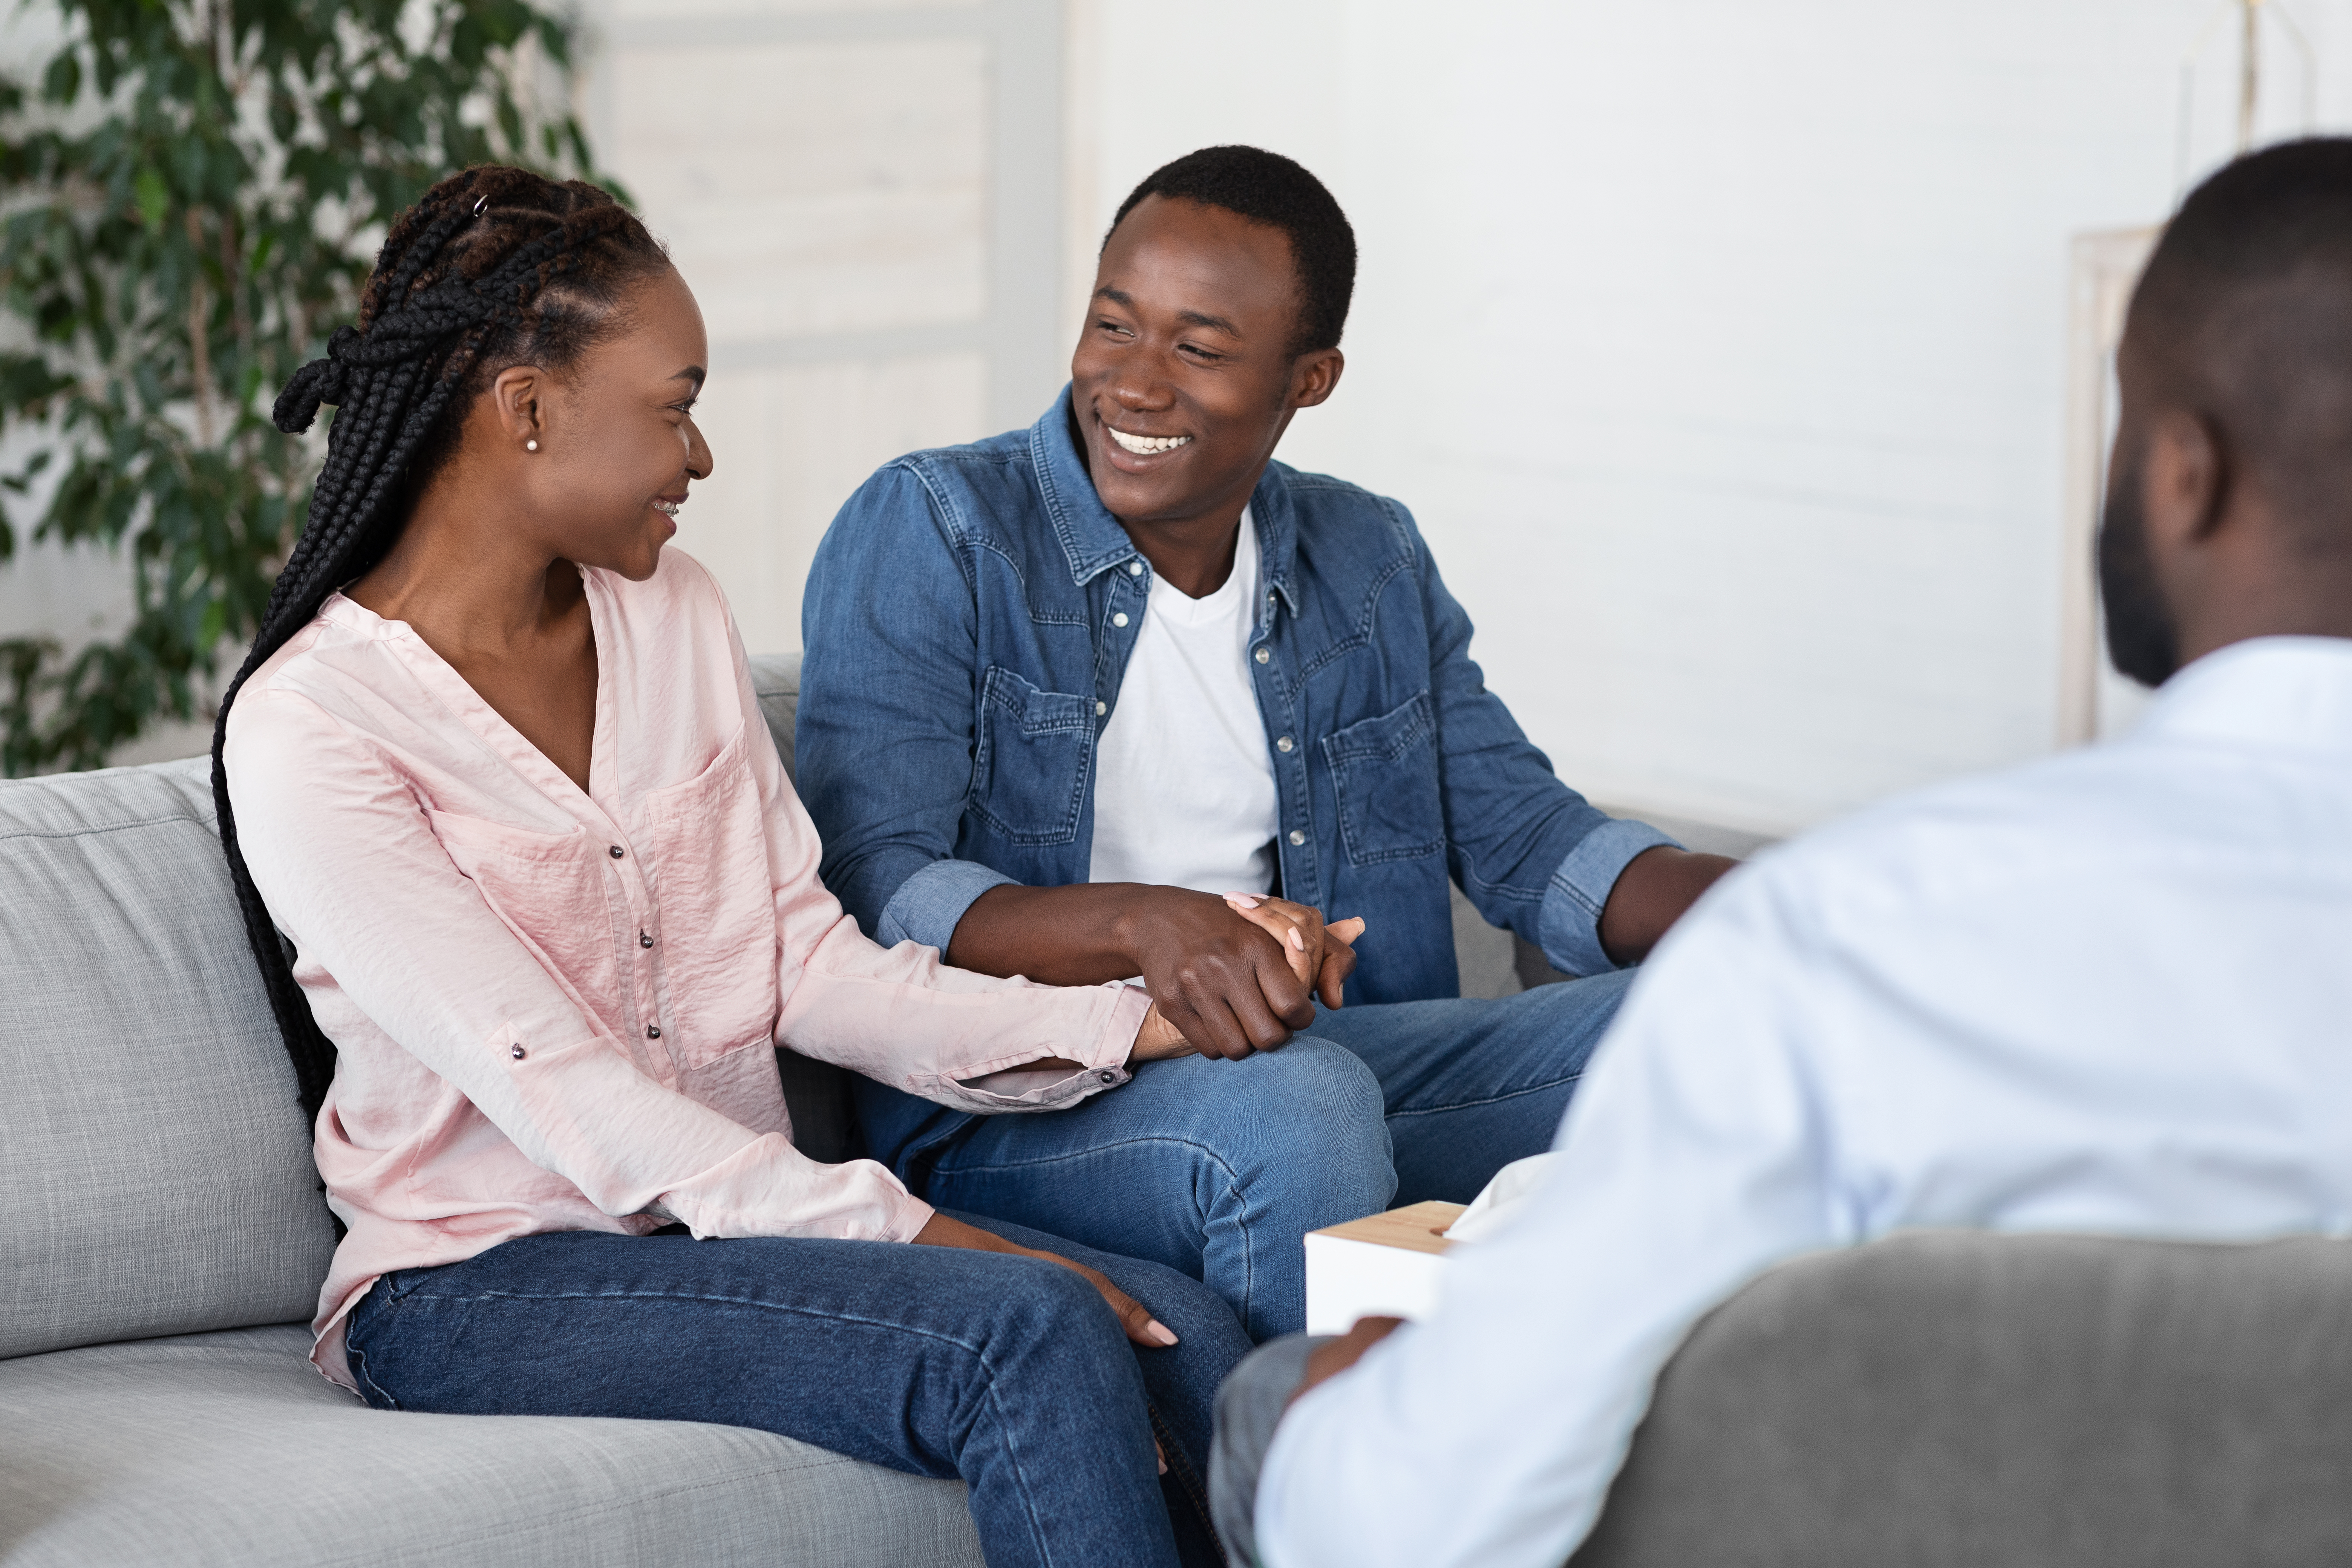 Couples who want to adopt may be overwhelmed with questions. For those starting out on the journey, here are the most important things.